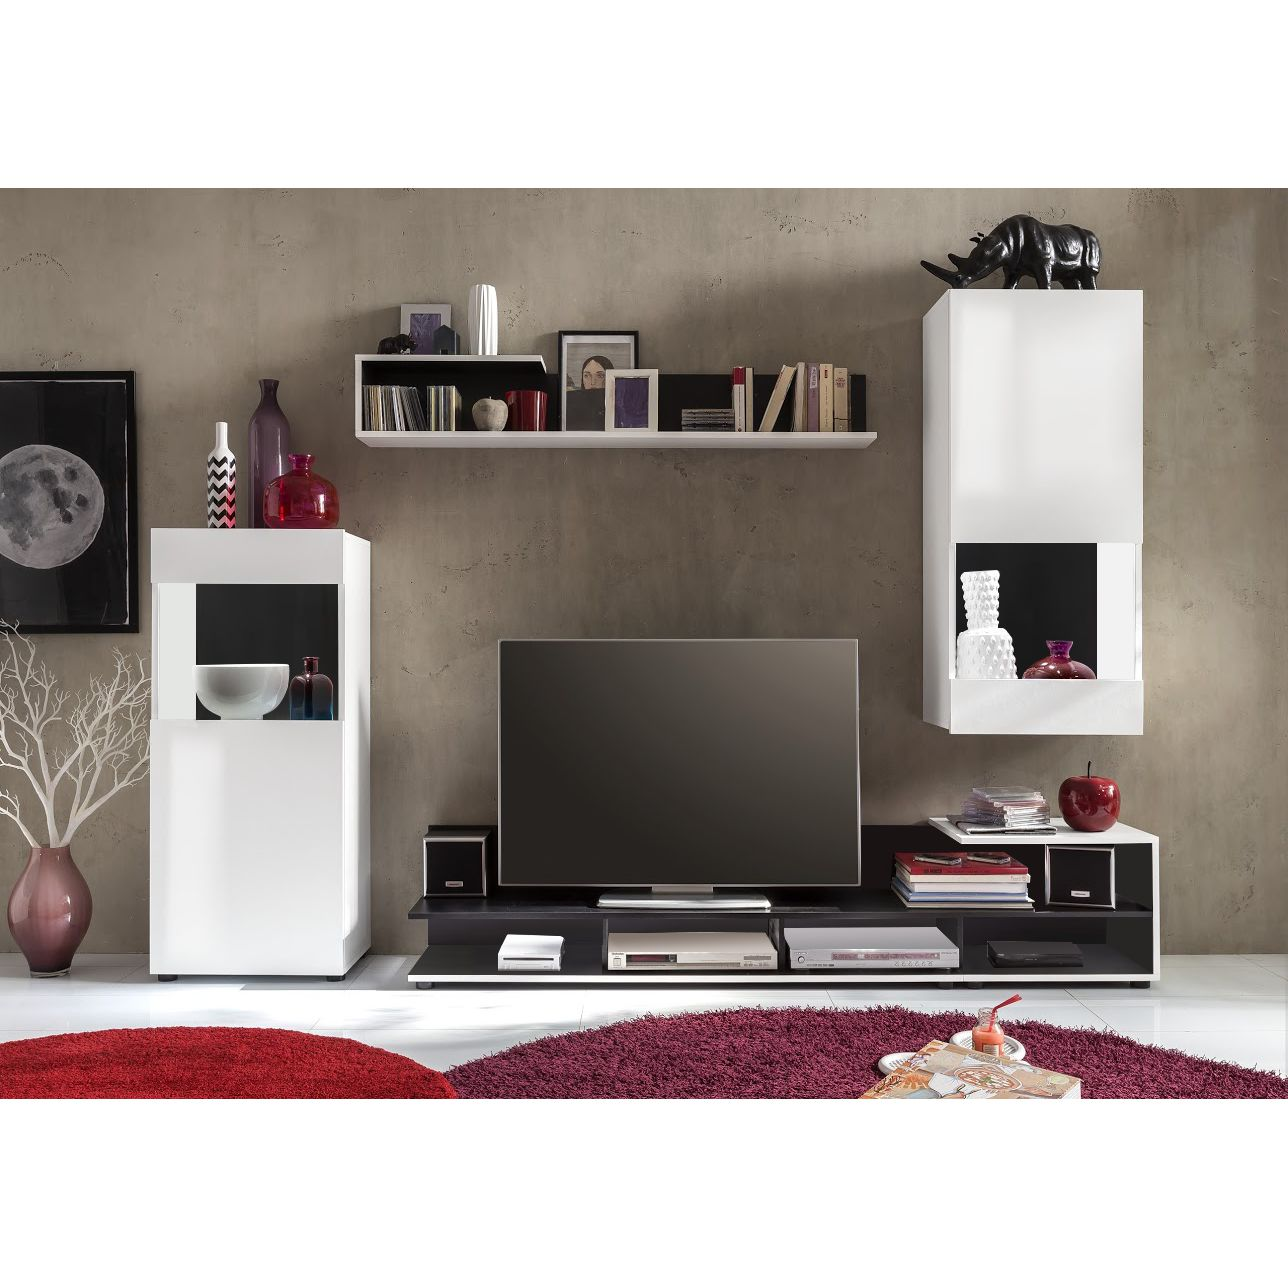 wohnwand minaya 4 teilig wei schwarz trendteam g nstig online kaufen. Black Bedroom Furniture Sets. Home Design Ideas